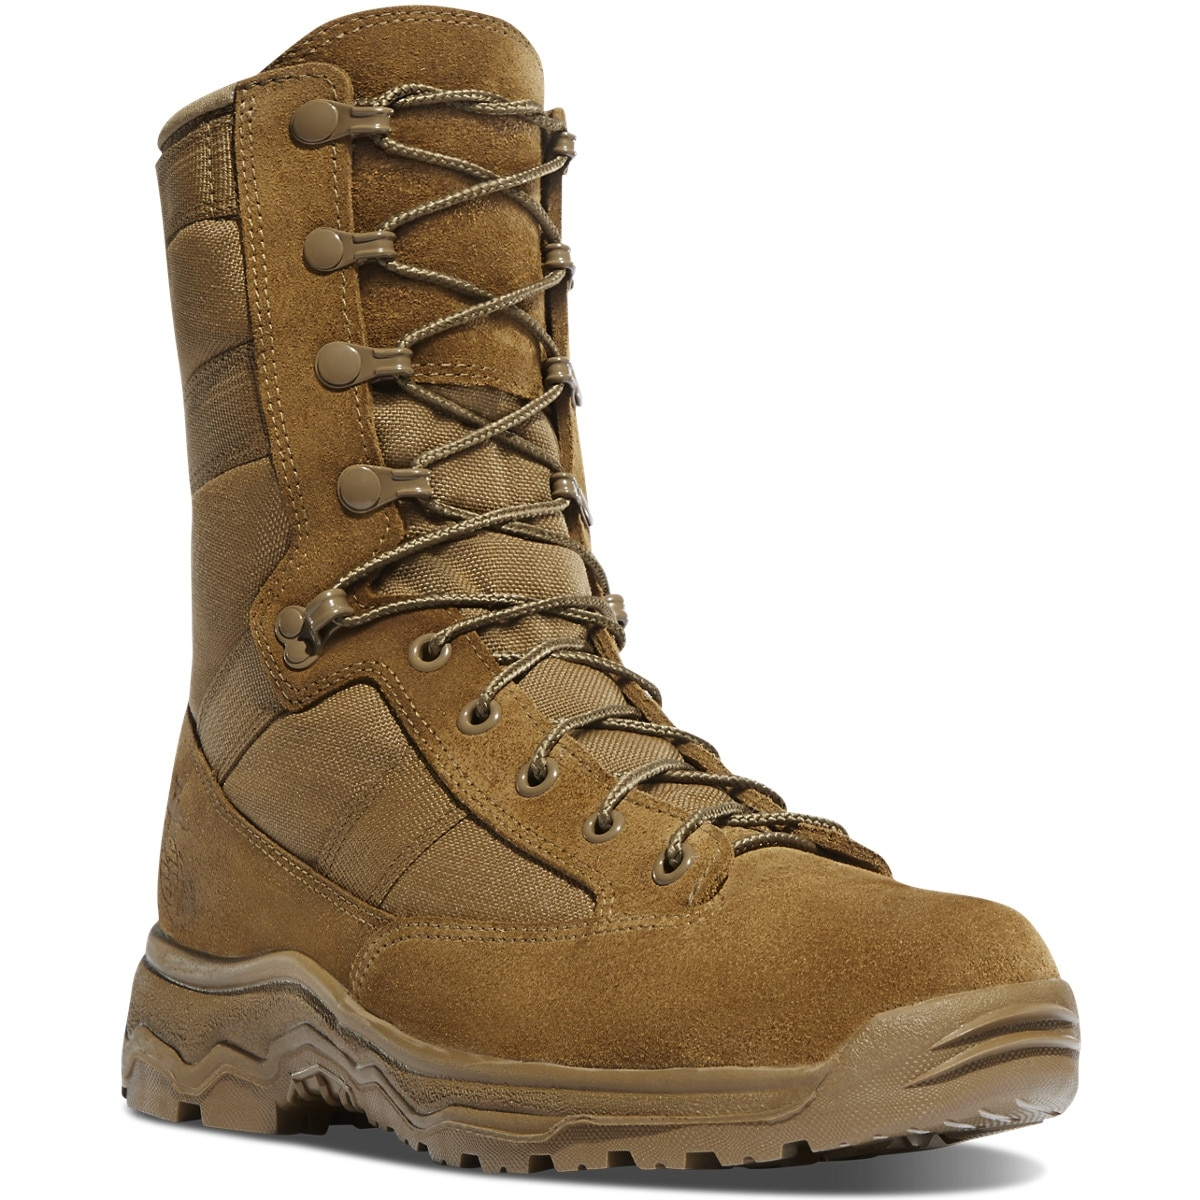 Danner Reckoning Boot To Be Used For Recruit Study Of